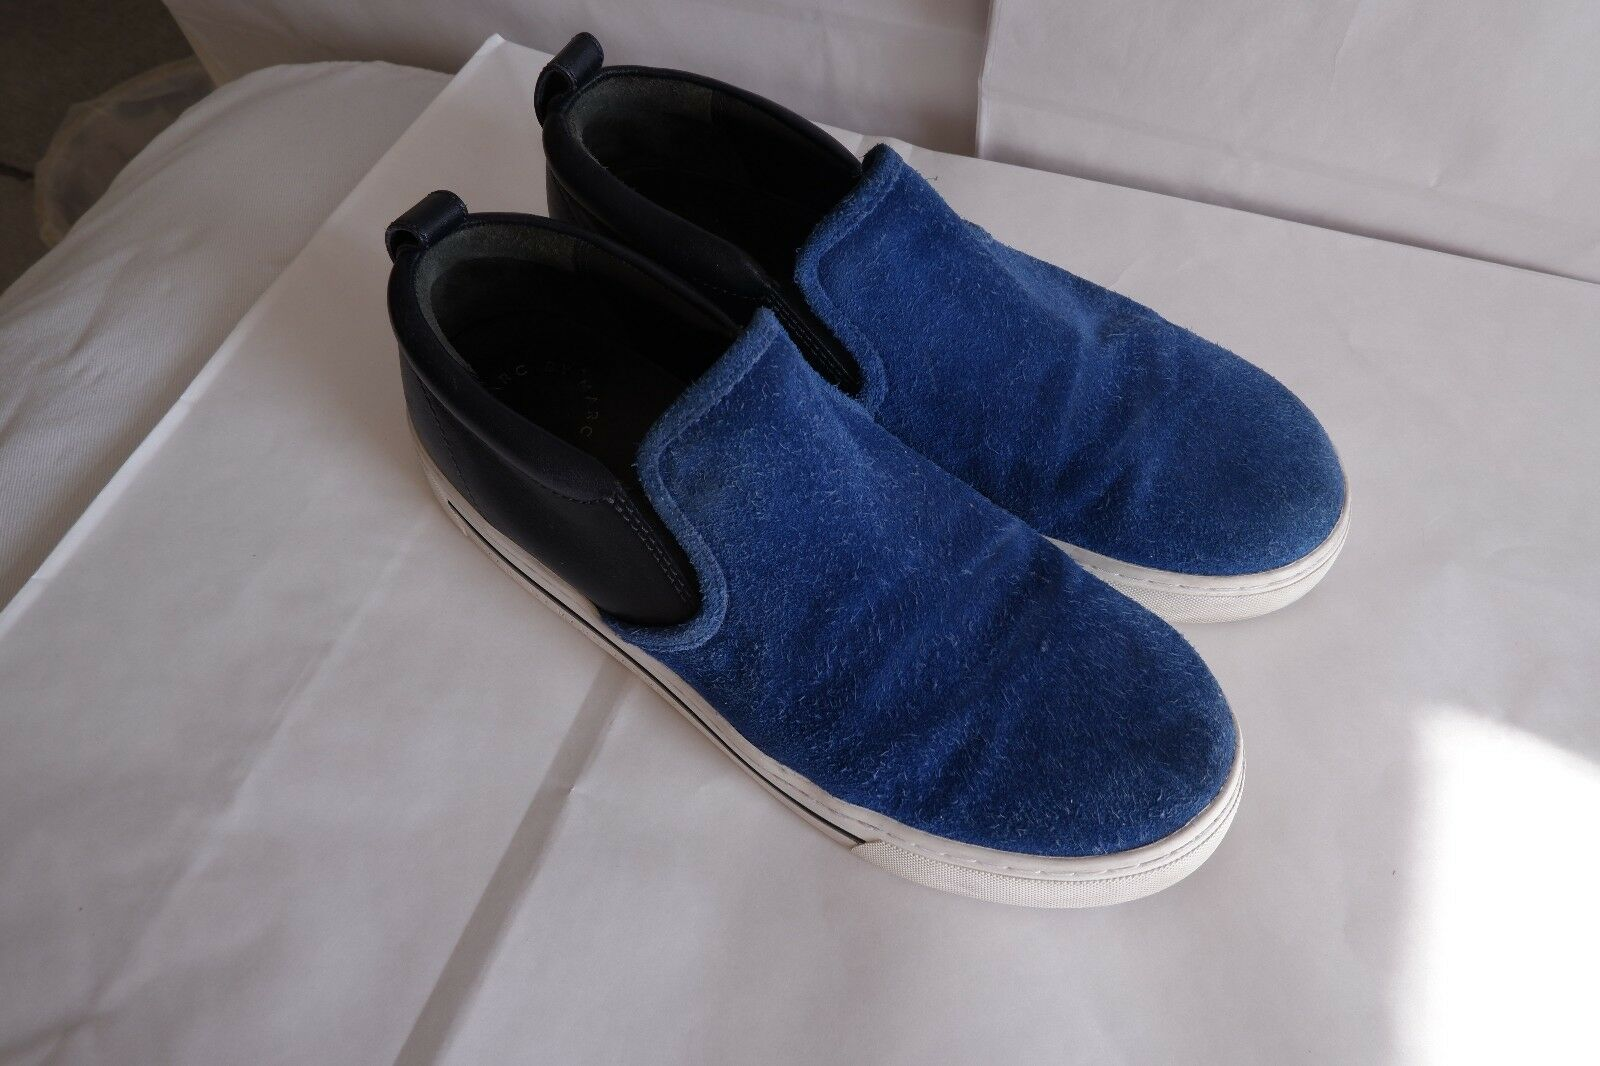 Marc By Marc Jacobs Women's bluee Seude and Navy bluee Leather Slip On Sneakers 7